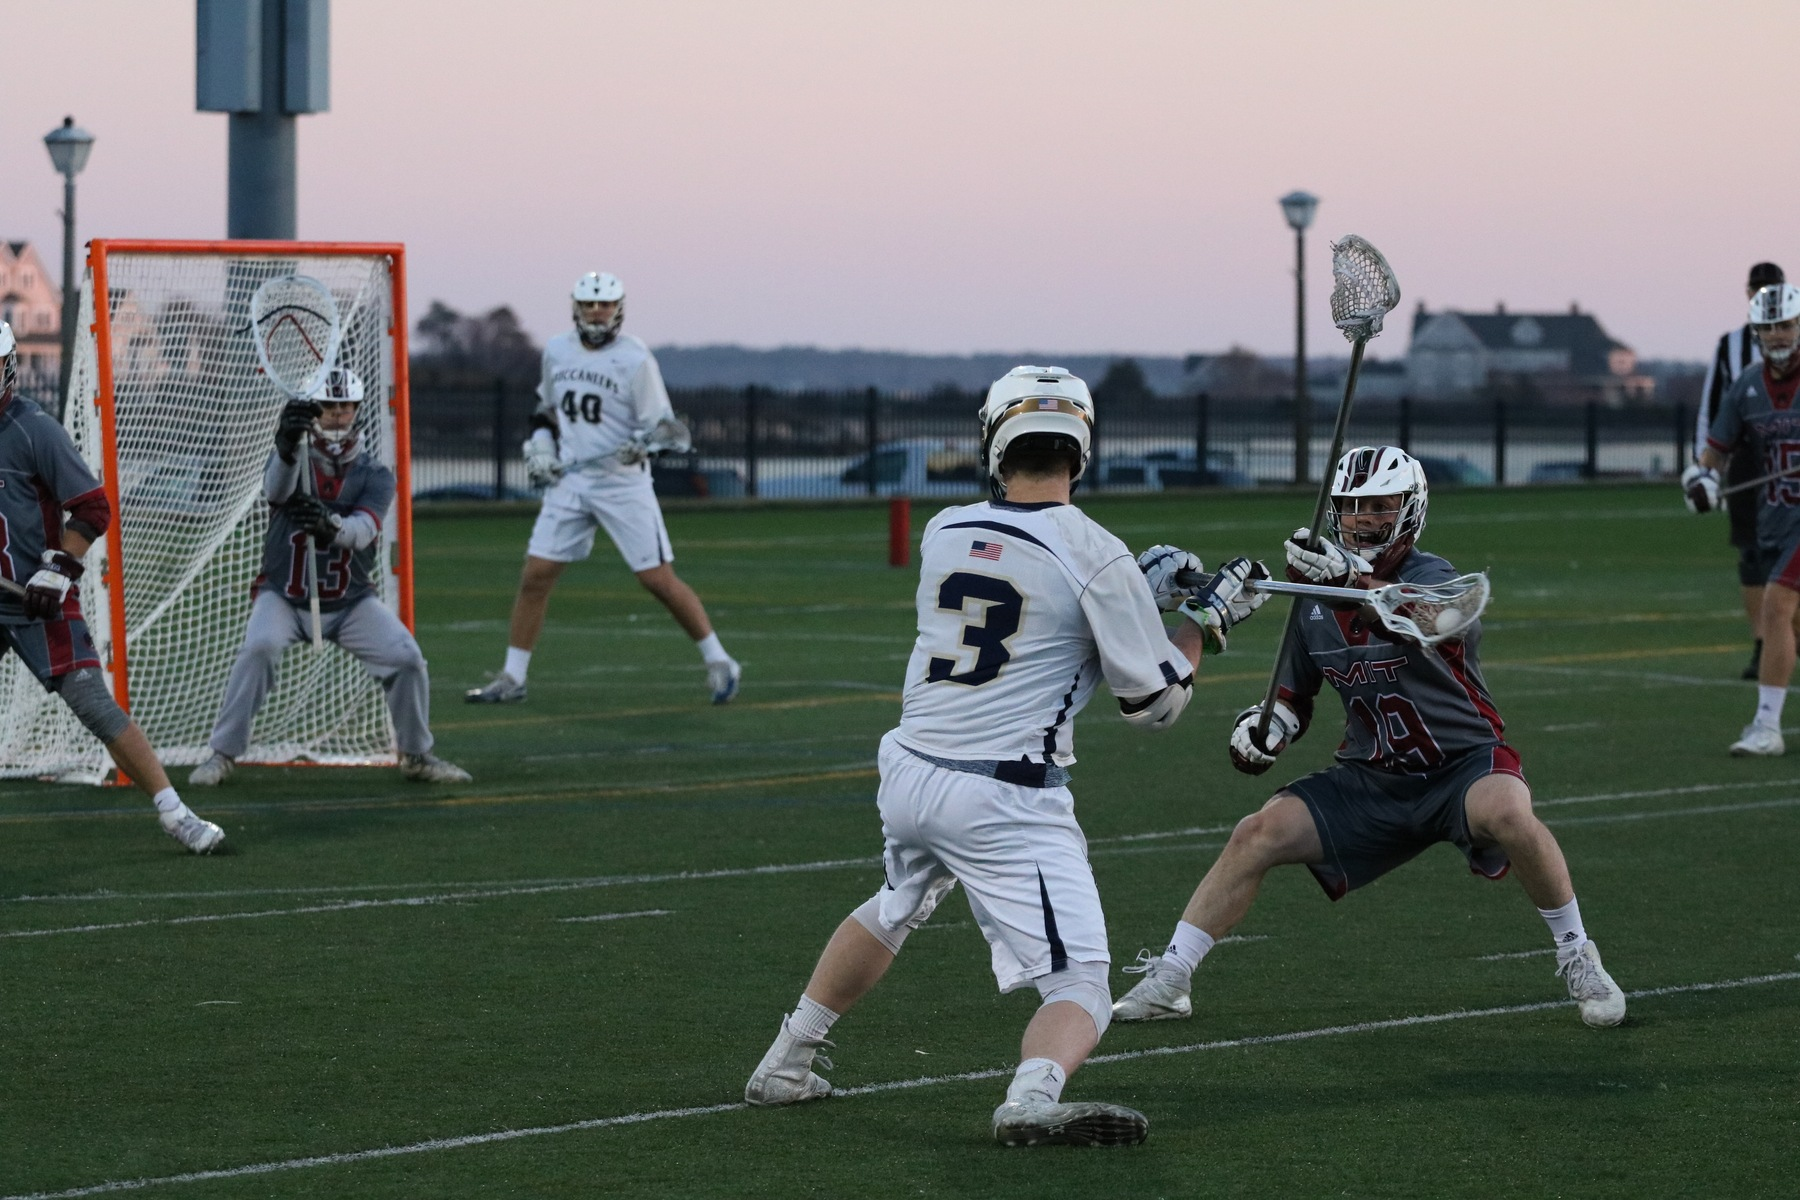 Avakian Records 100th Career Point as Buccaneers Ground the Falcons